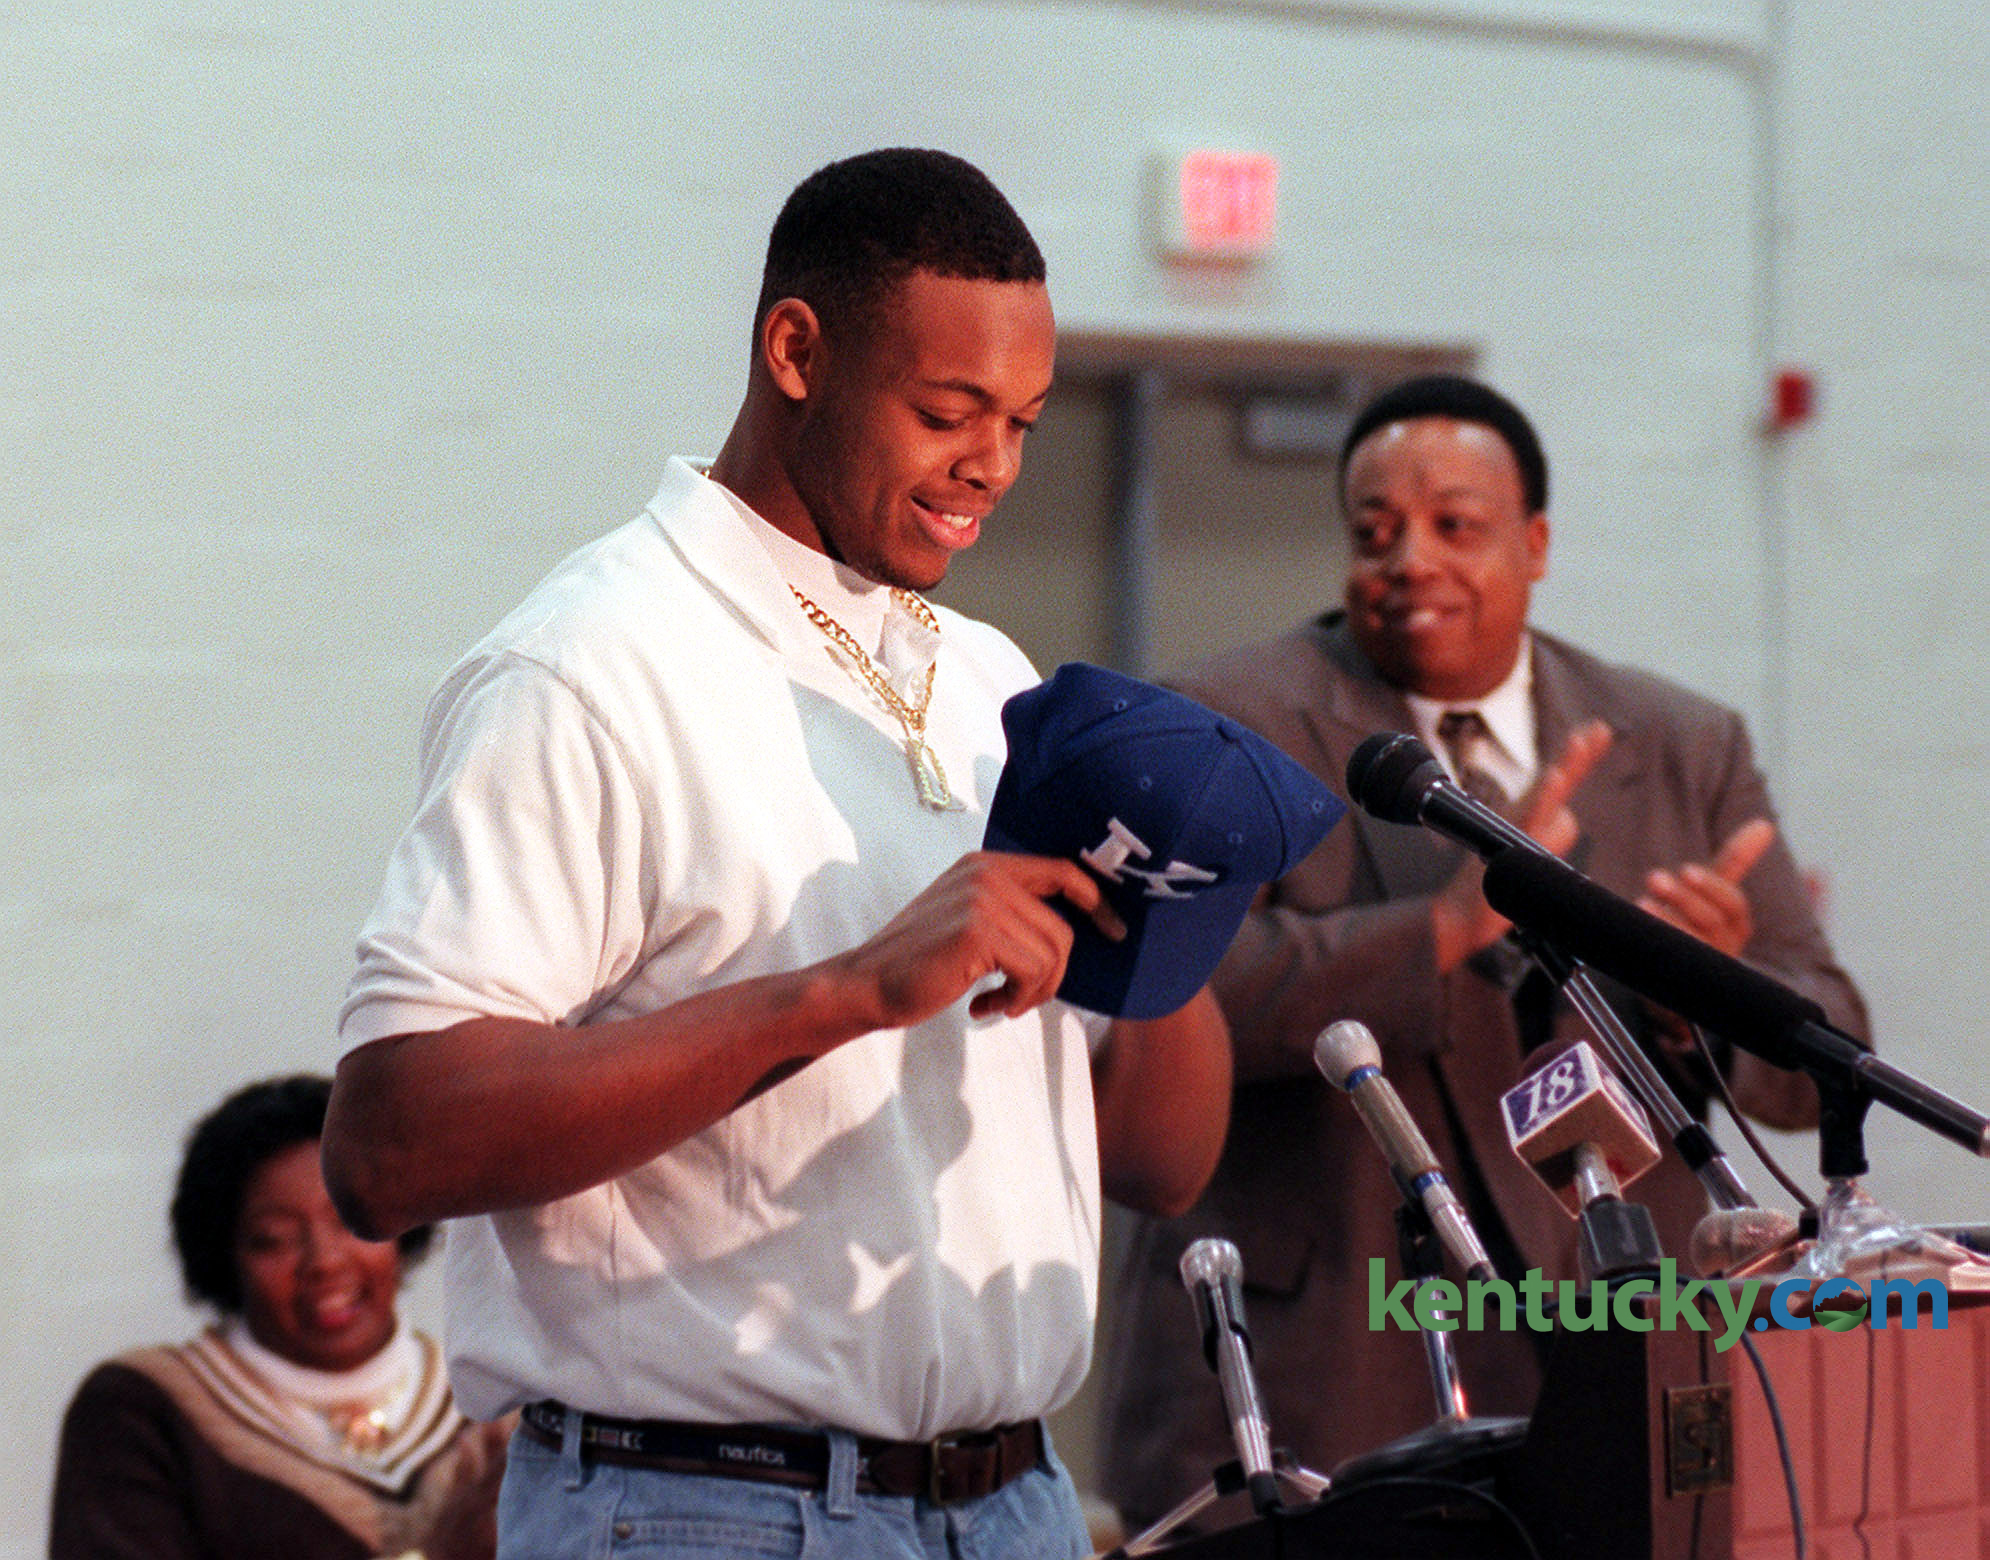 Dennis Johnson signs with UK, 1998 | Kentucky Photo Archive